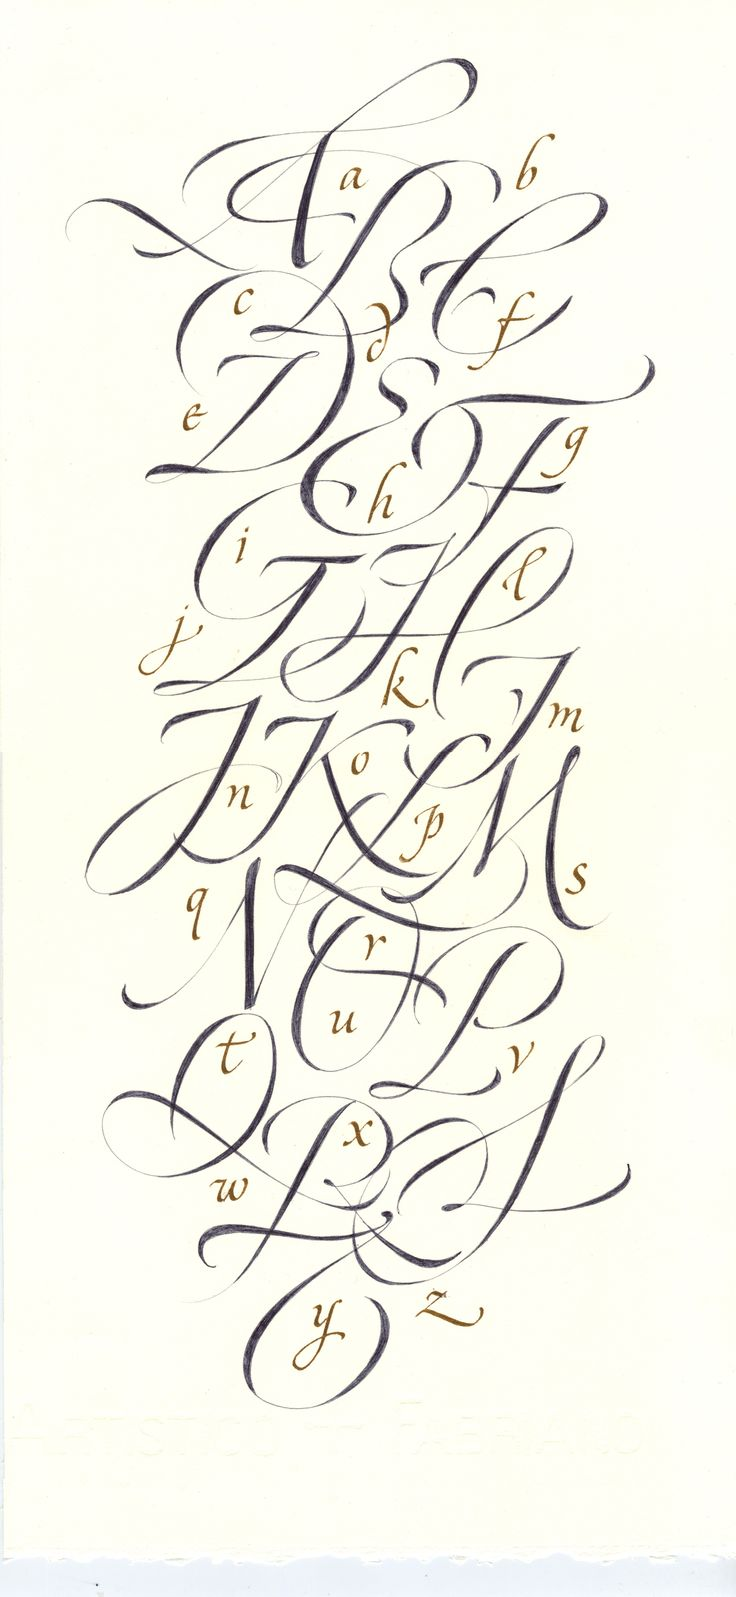 69 best images about tattoo fonts and symbols on pinterest for Tattoo cursive alphabet